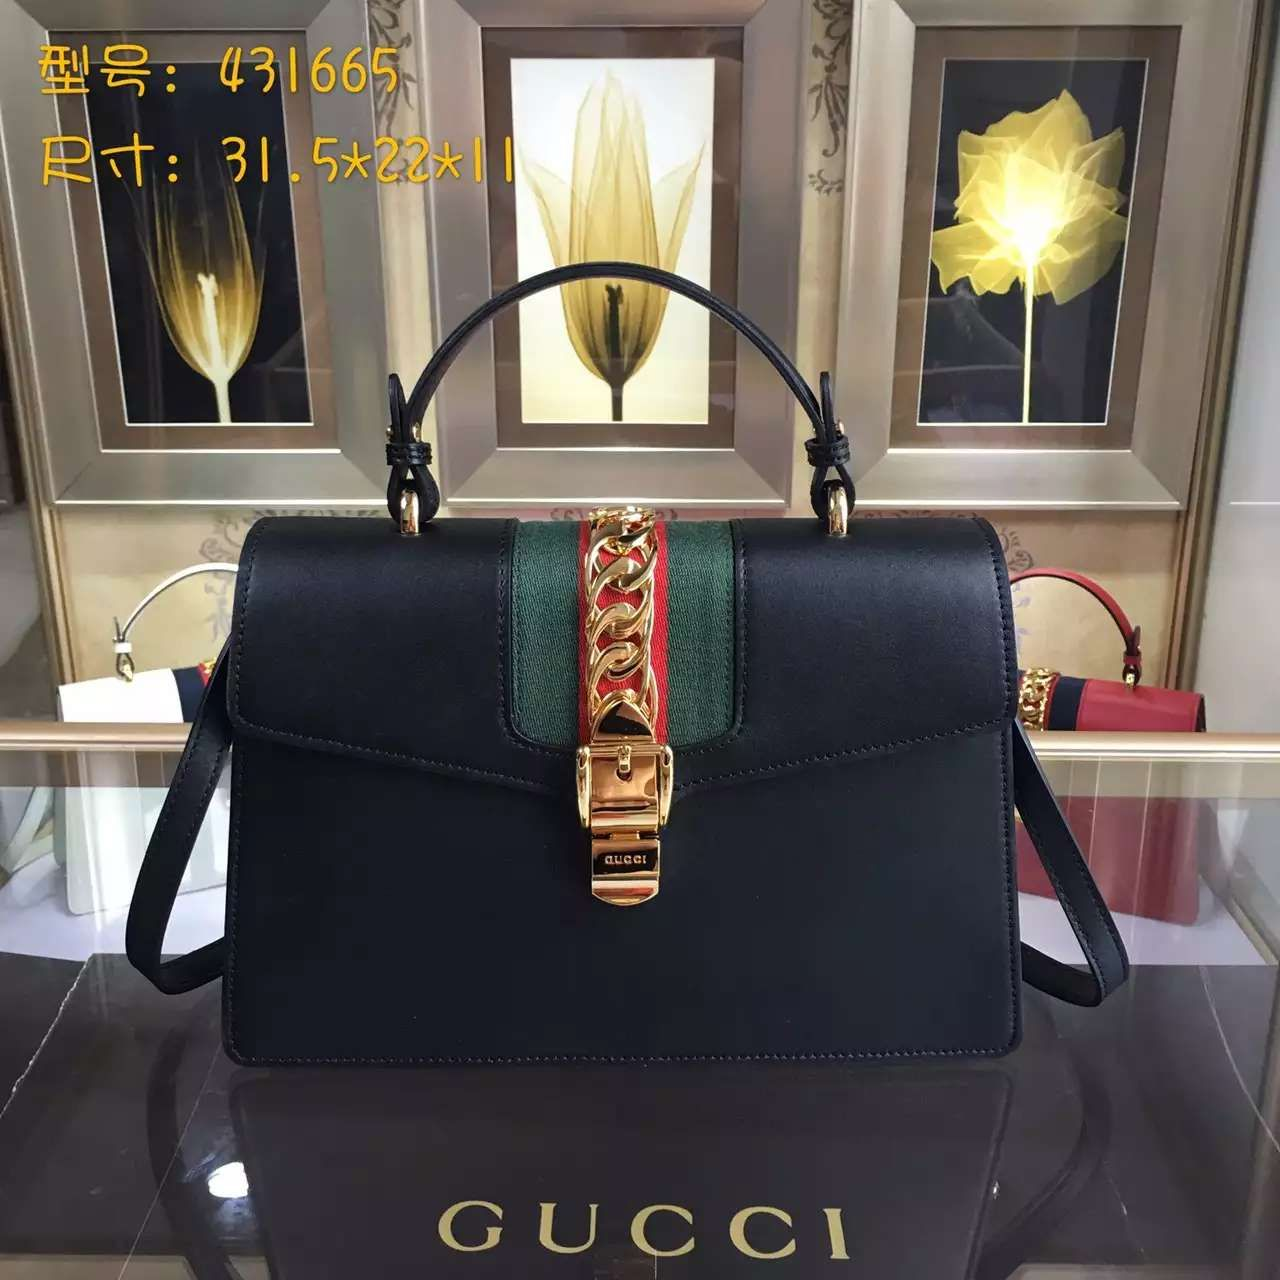 gucci Bag, ID : 64963(FORSALE:a@yybags.com), gucci store online, www gucci store, cheap gucci handbags, gucci black leather wallet, gucci tw, gucci quilted handbags, gucci briefcase sale, gucci mobile site, gucci company profile, style gucci, gucci buy purse, gucci discount, gucci handbag sale, gucci bag purse, gucci discount leather handbags #gucciBag #gucci #gucci #online #usa